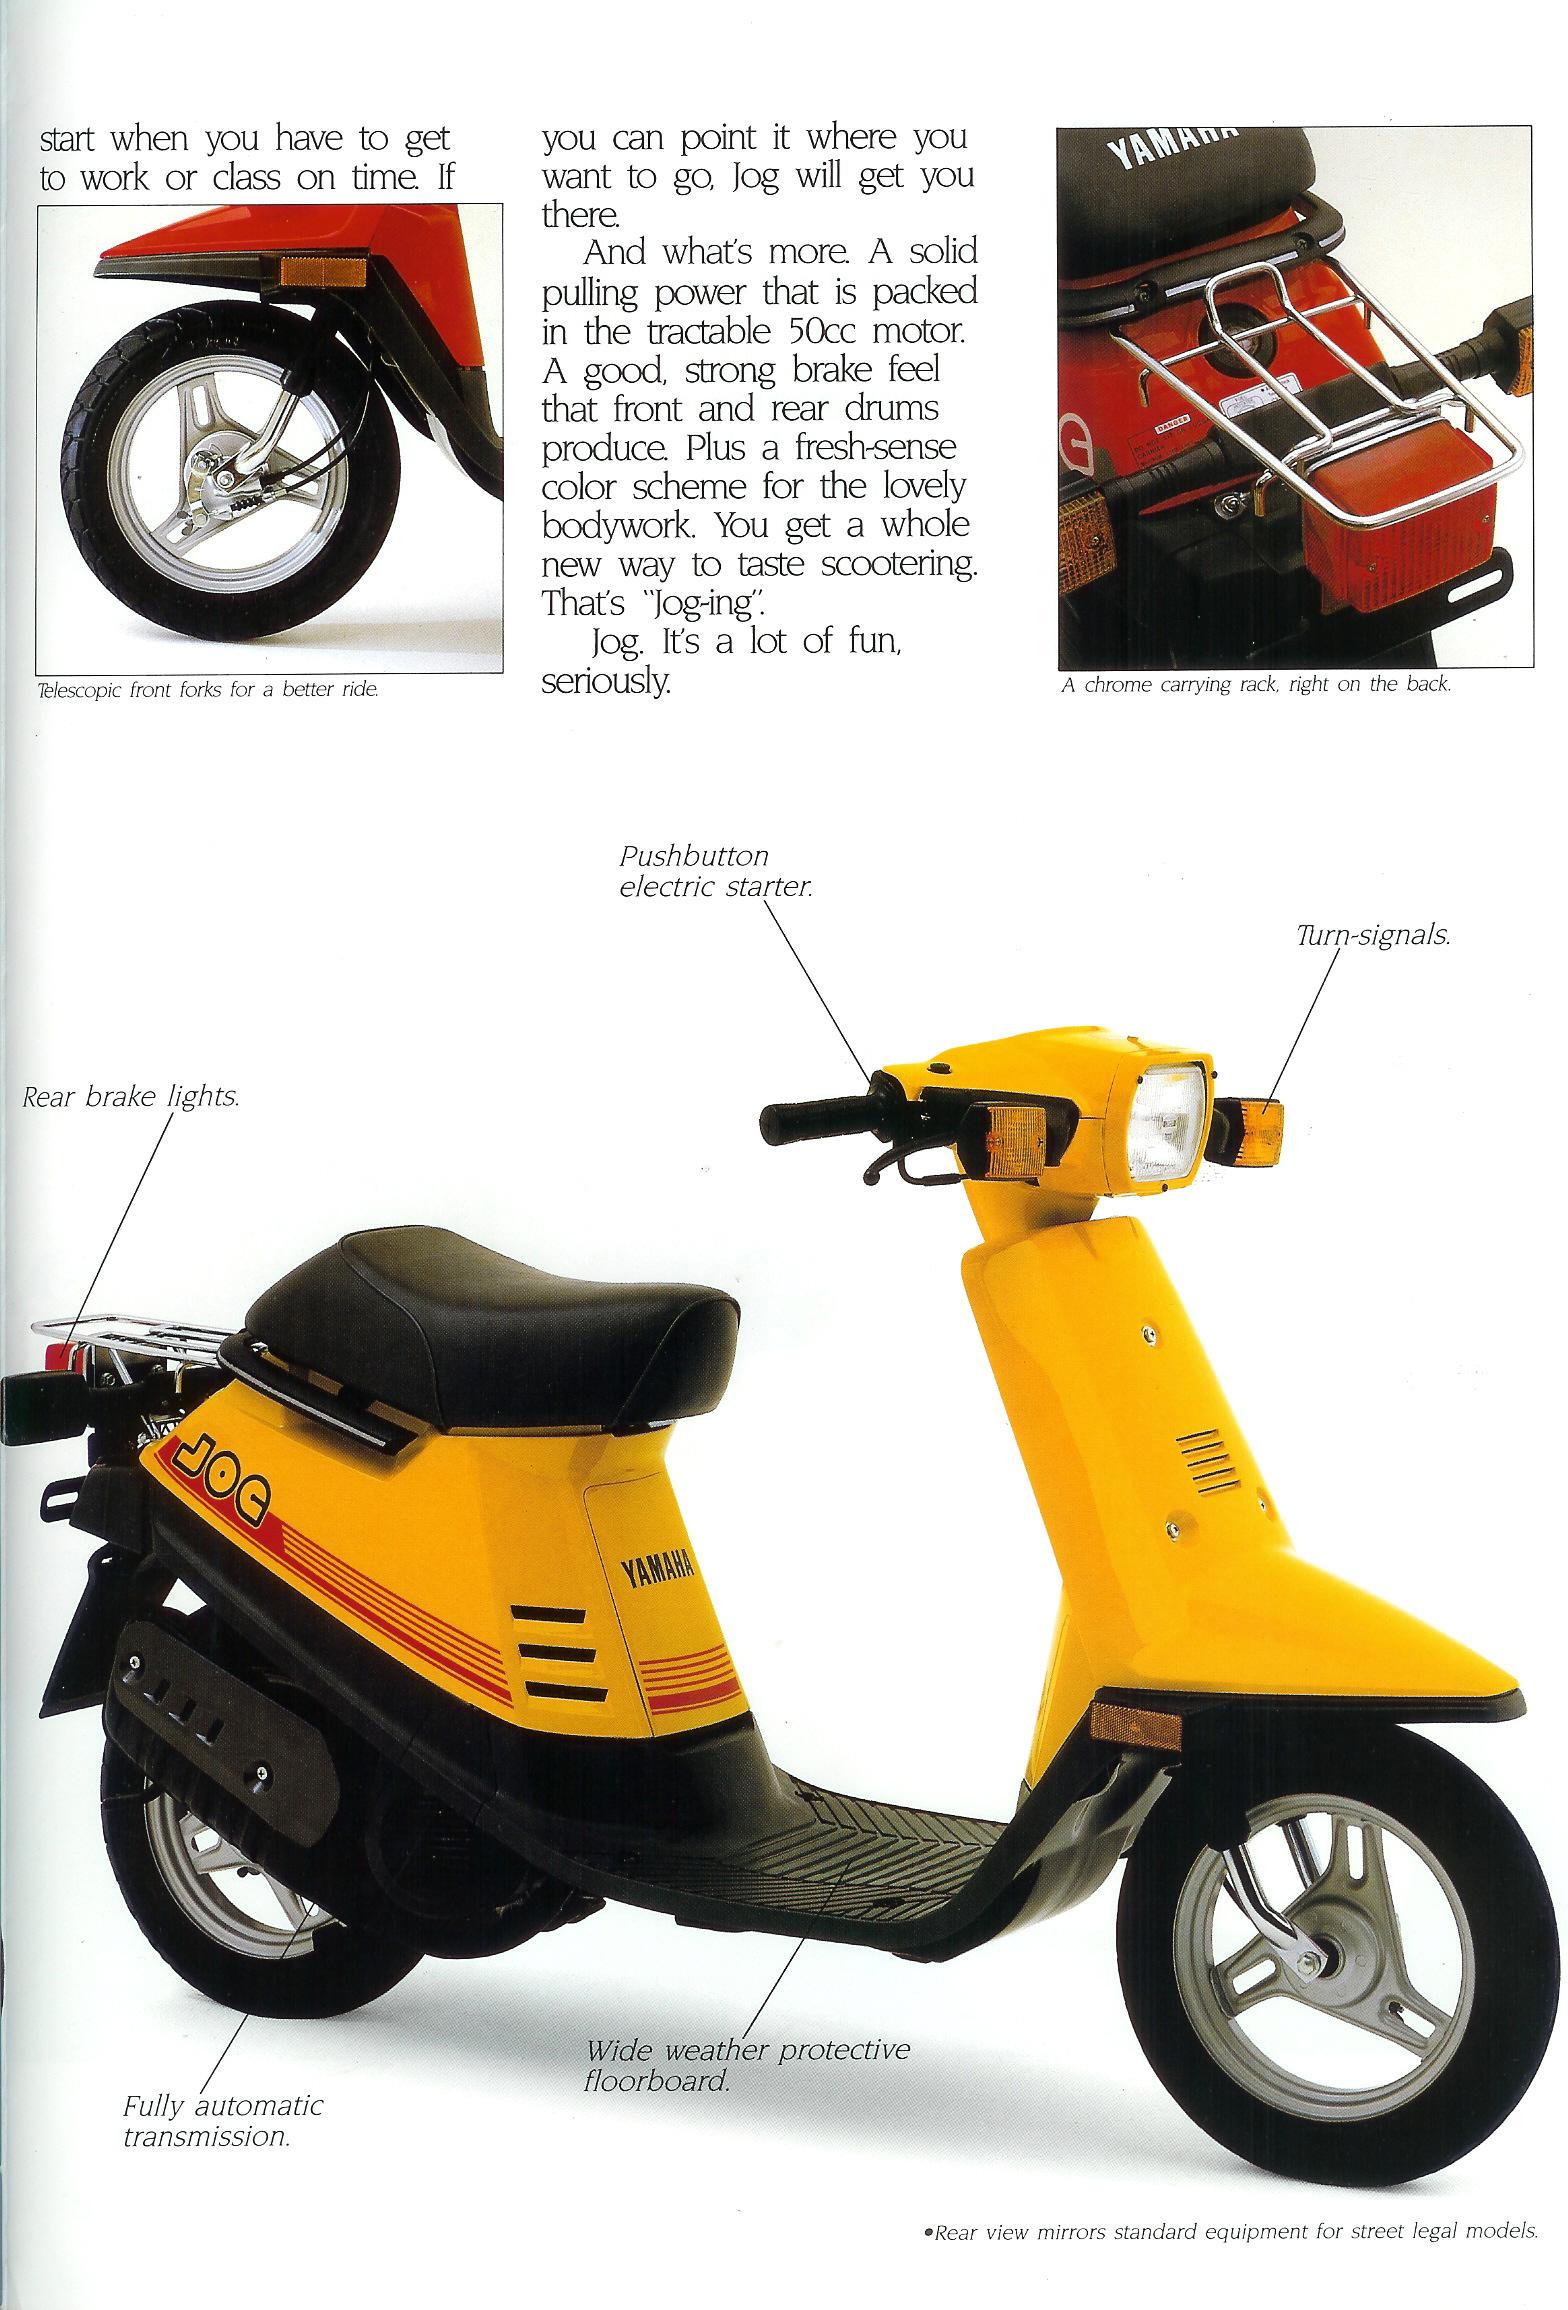 General Yamaha Scooter Information Qt 50 Wiring Diagram